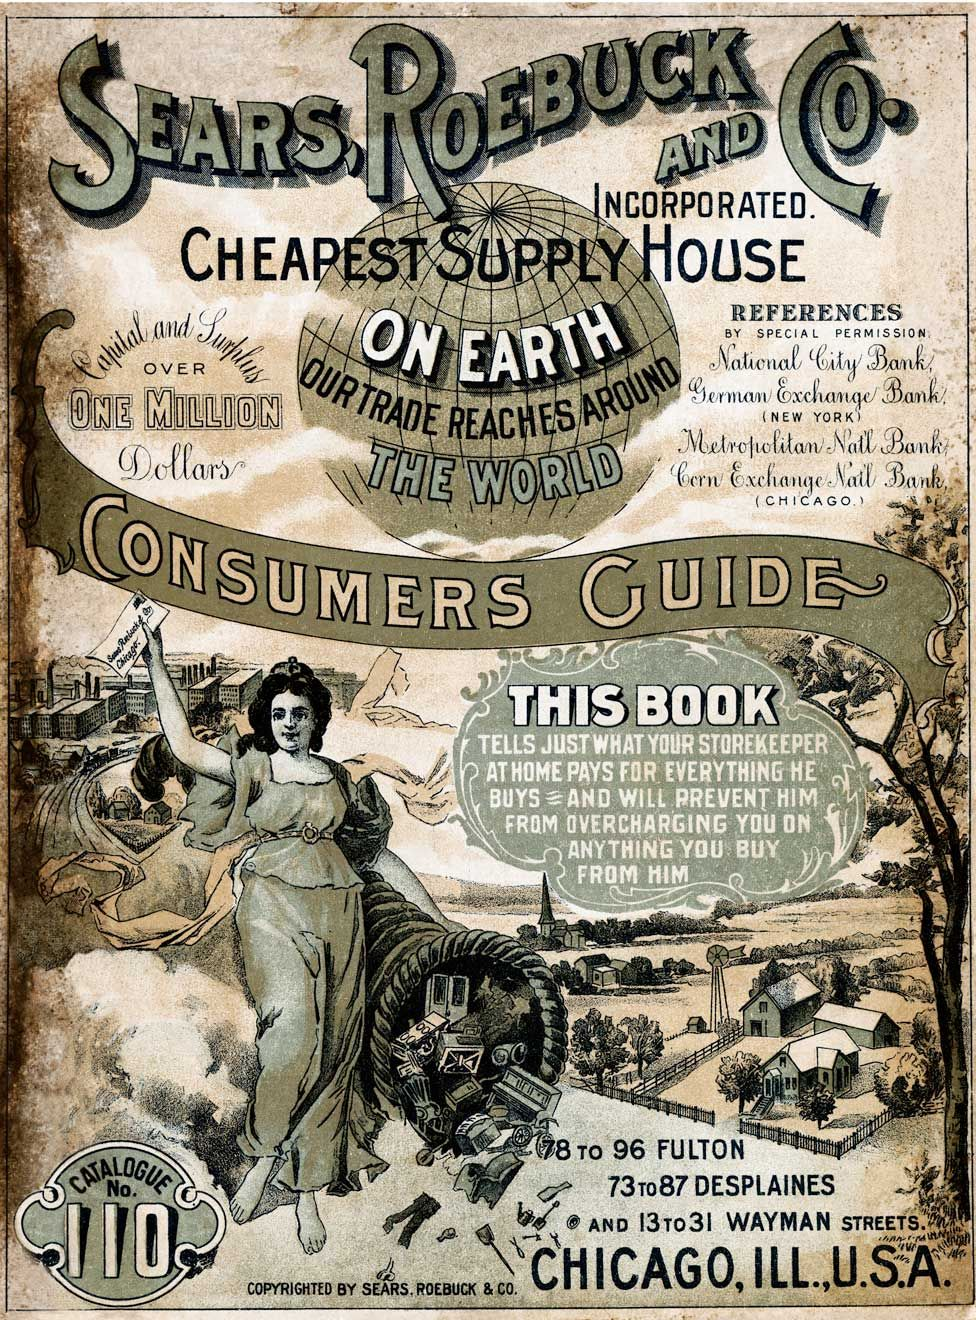 The cover of the Sears Roebuck and Co consumers guide from 1900